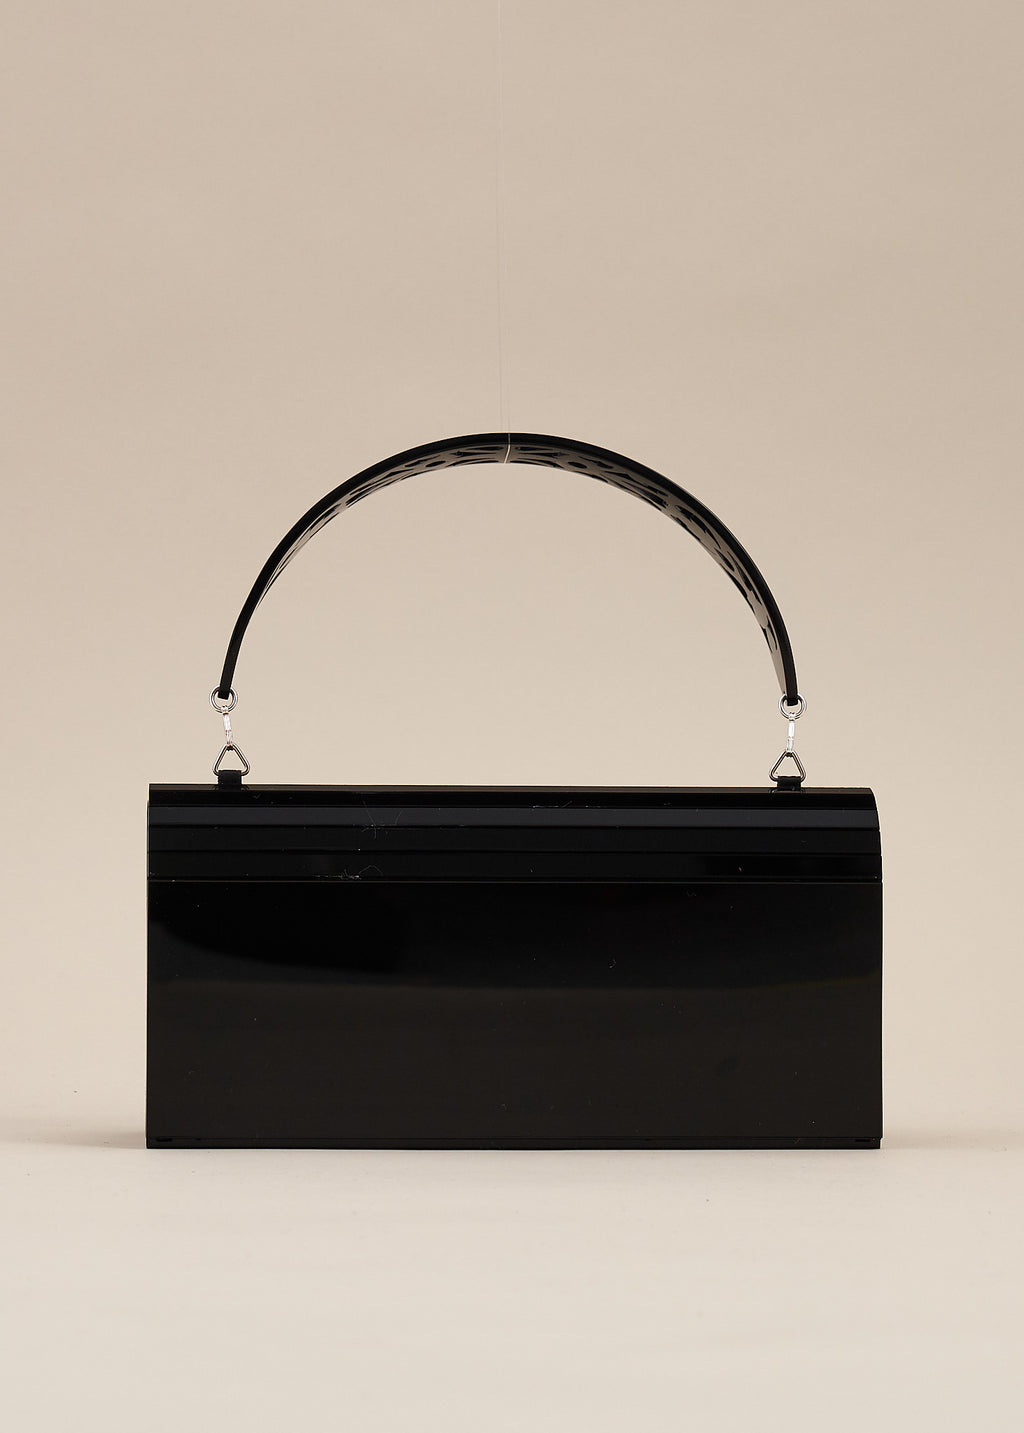 Francesca carved jet-black lucite handbag by Miss L Fire. Features a detachable handle so that the purse can be worn also as a clutch bag. Perfect for  brides or bridesmaids. Handmade in Barcelona.